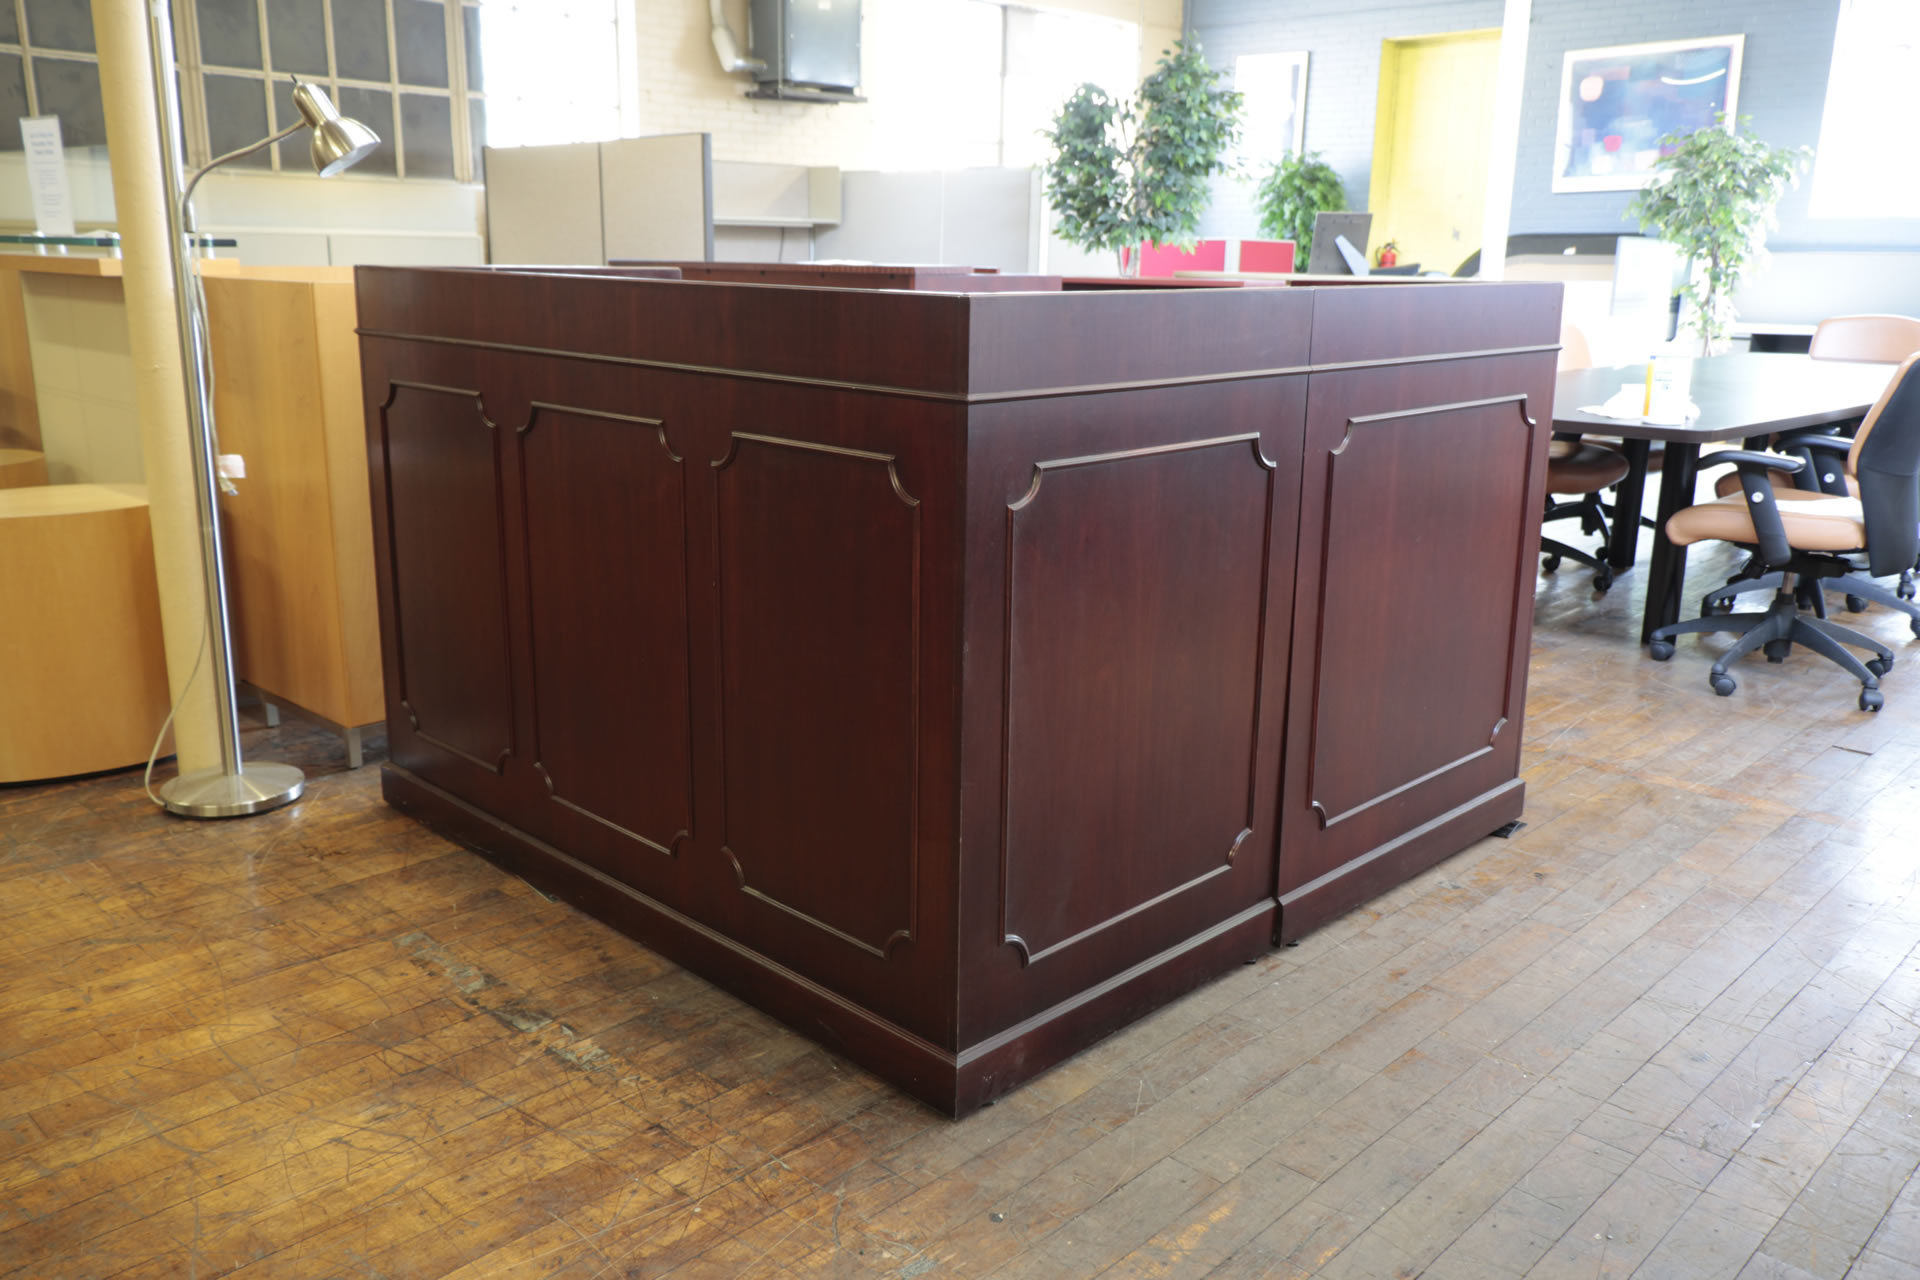 peartreeofficefurniture_peartreeofficefurniture_mg_4573.jpg